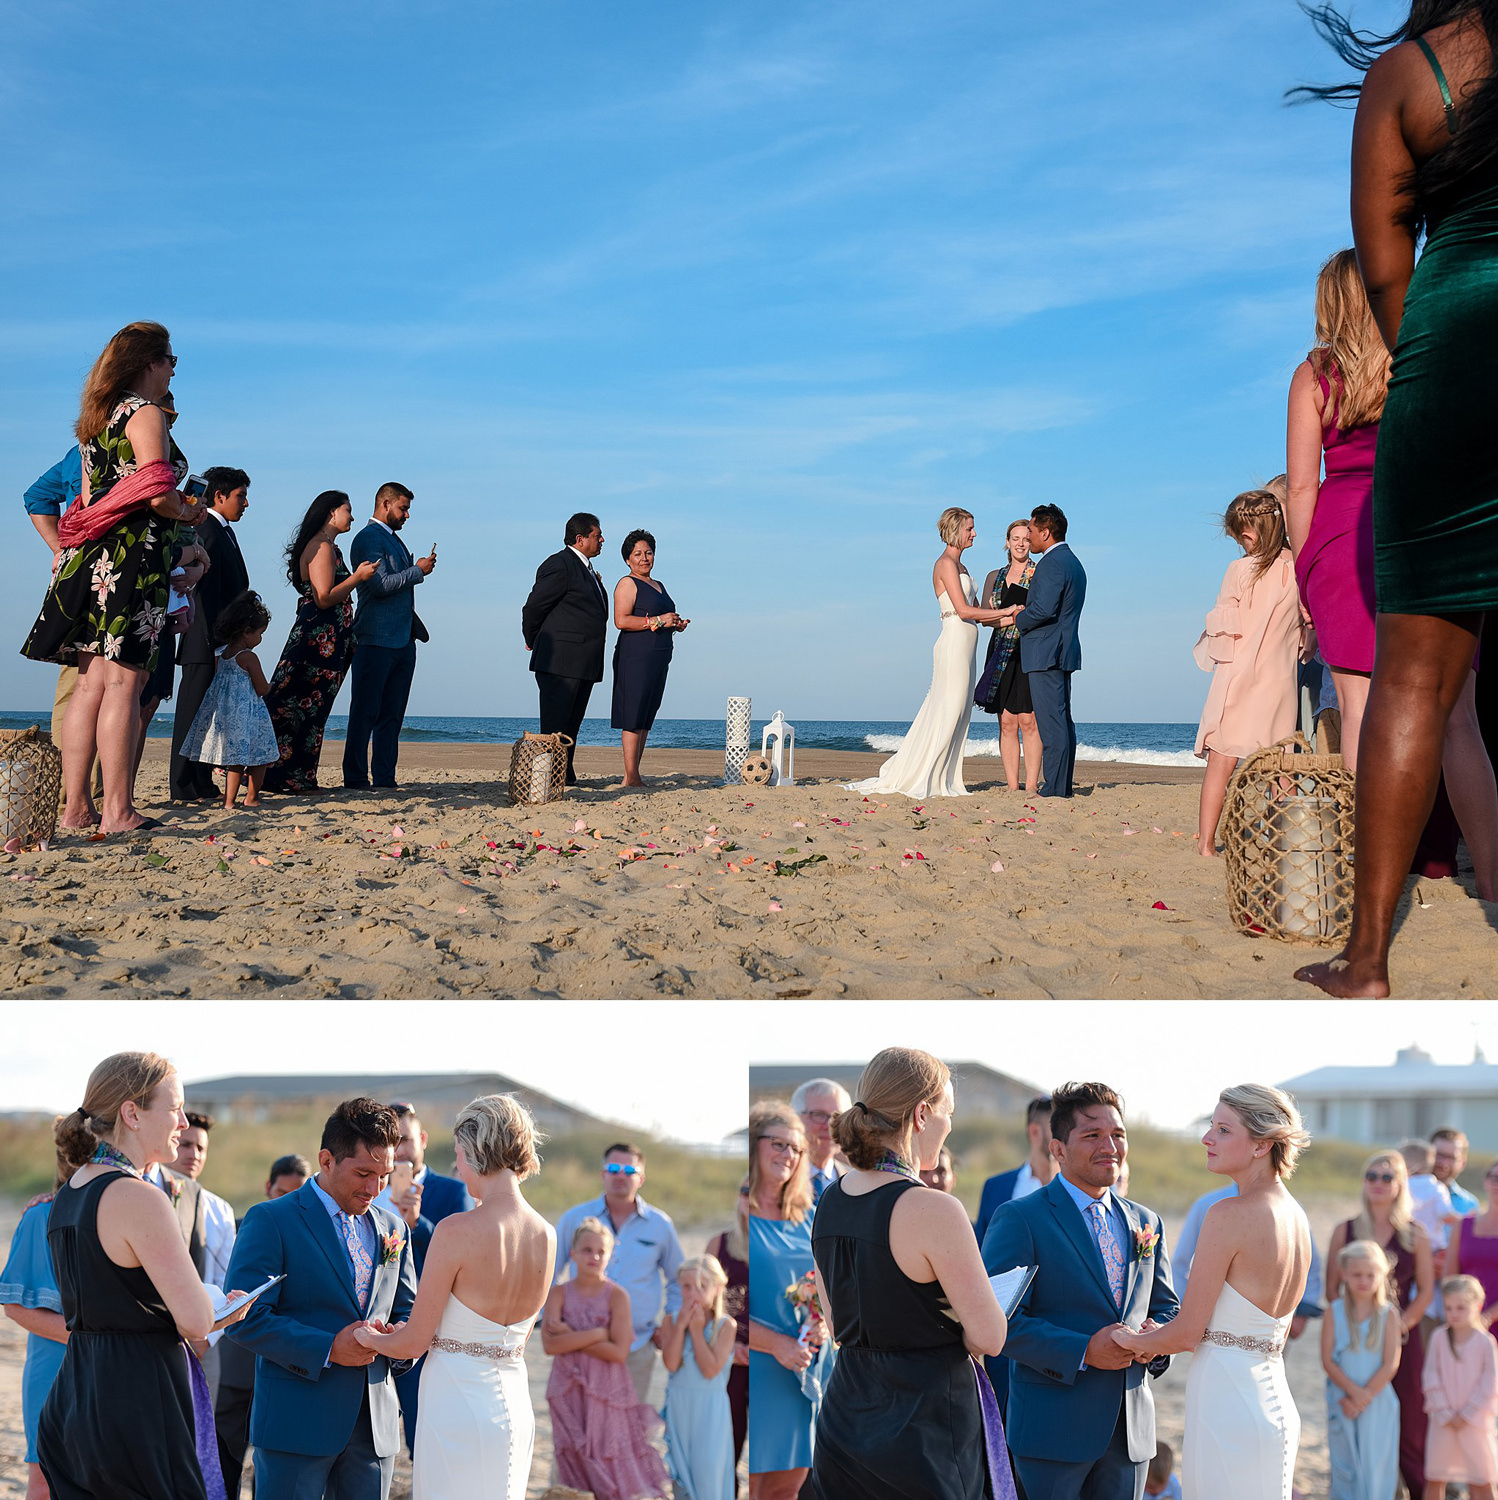 beach-ceremony-award-winning-destination-wedding-photographer-melissa-bliss-photography-VA-weddings.jpg